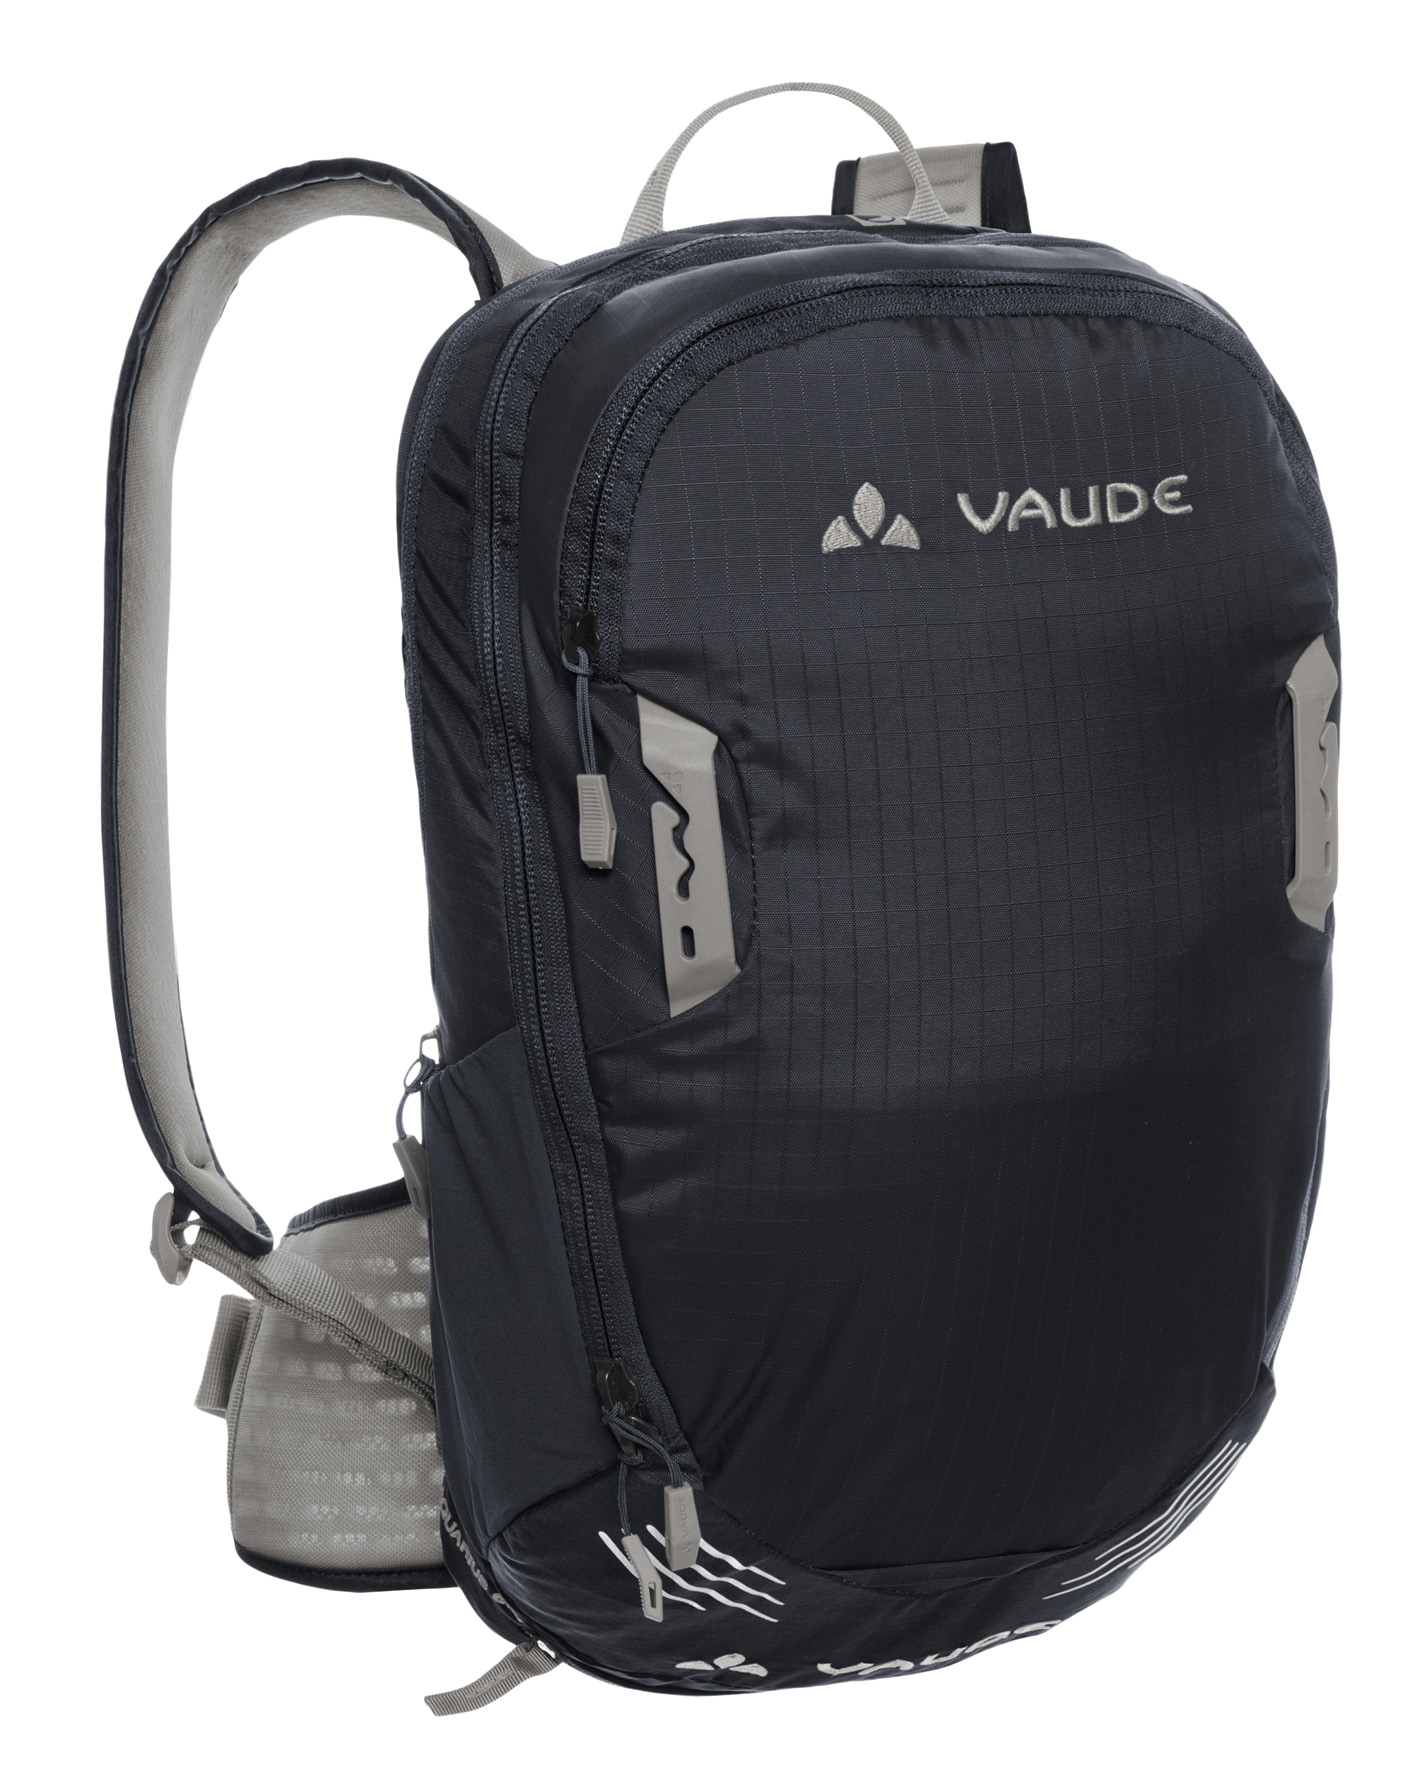 VAUDE Aquarius 6+3 black  - schneider-sports